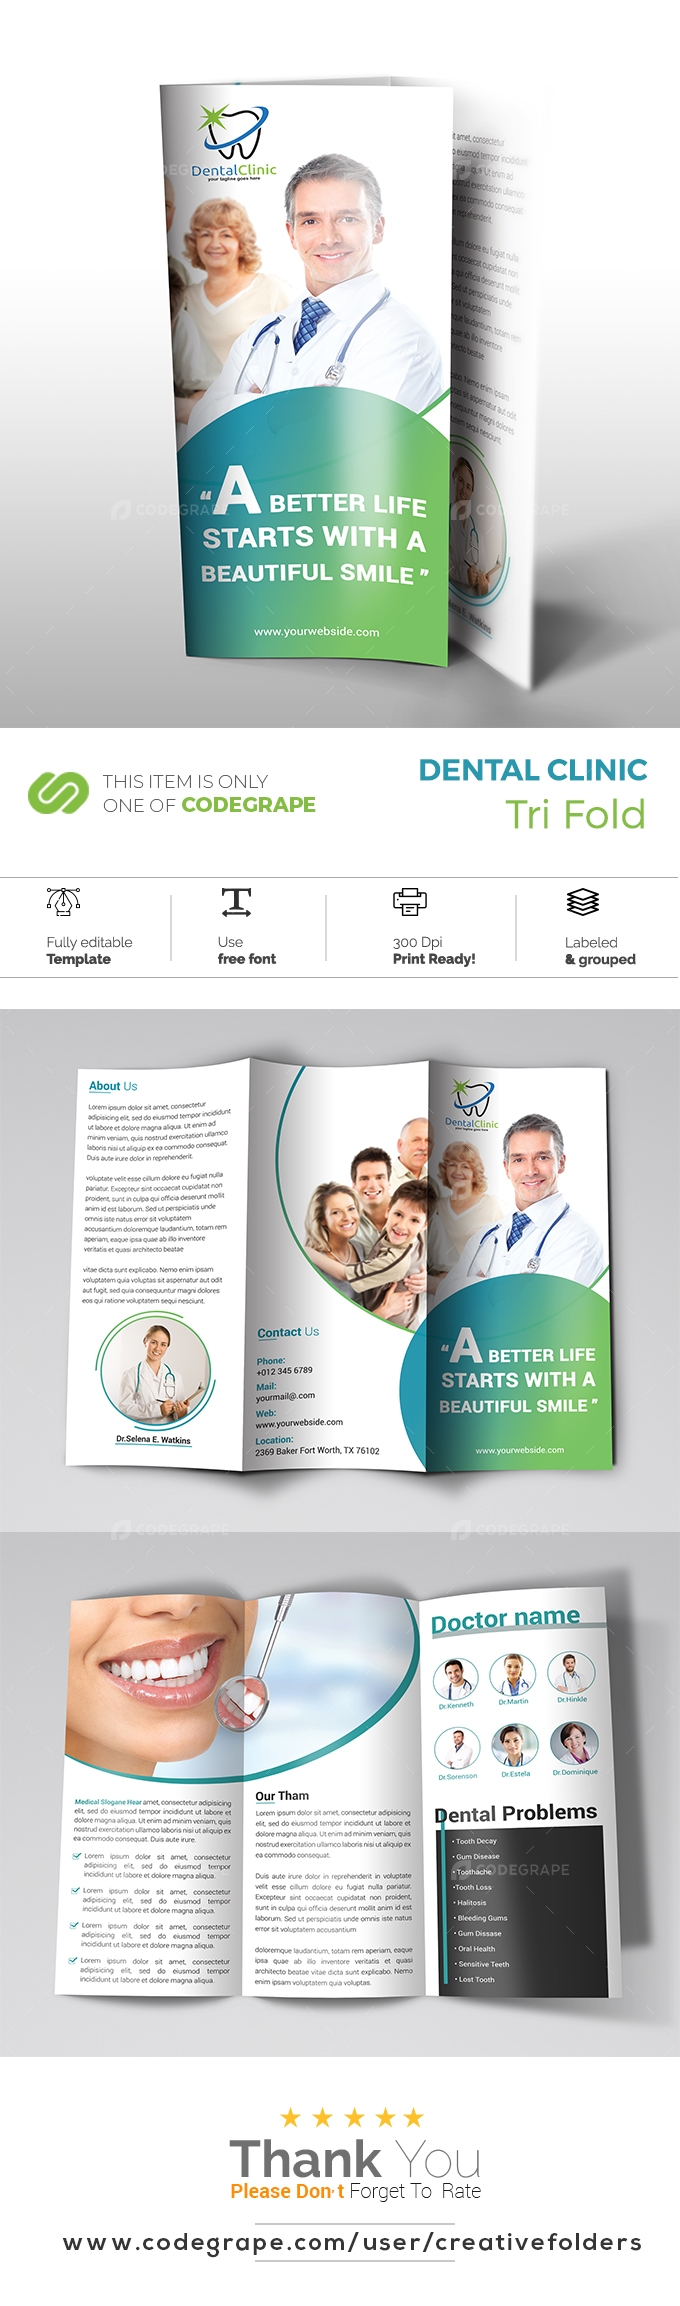 Dental Clinic Trifold